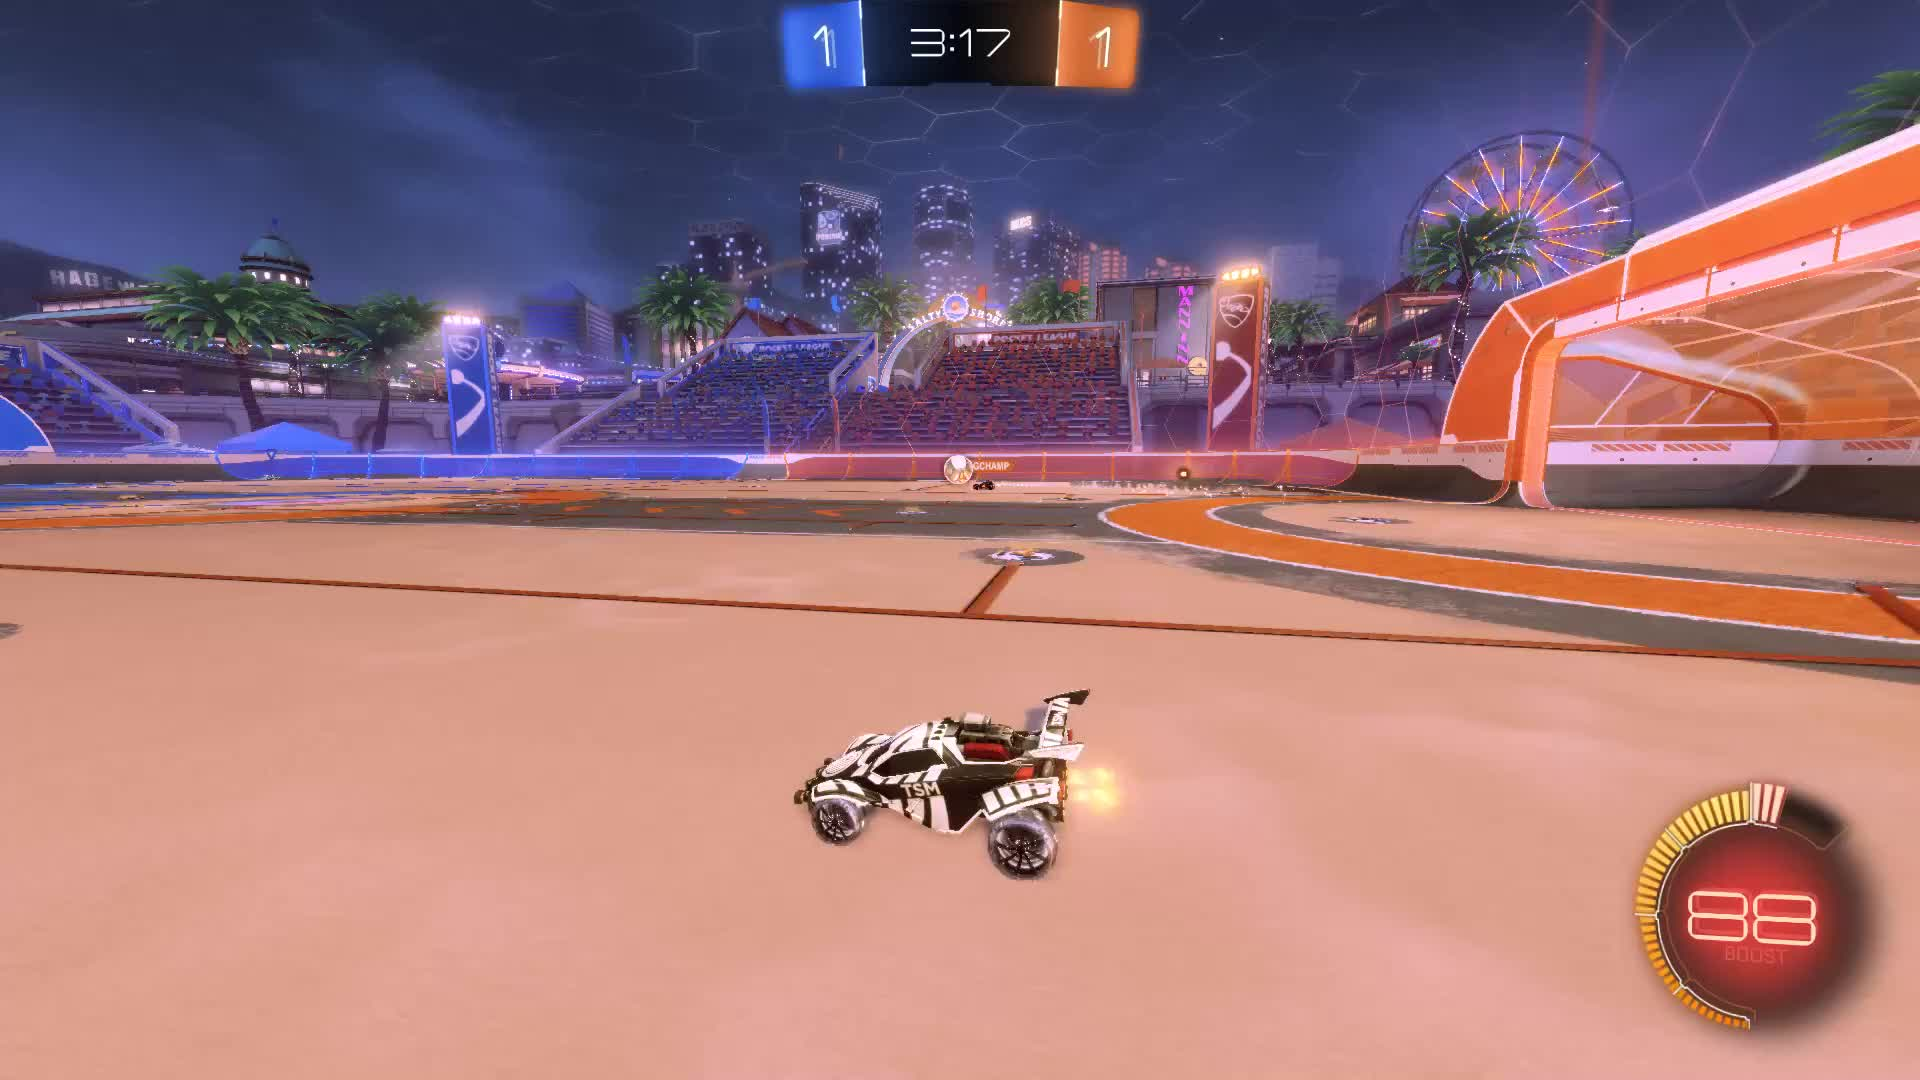 Gif Your Game, GifYourGame, Goal, M15, Rocket League, RocketLeague, Goal 3: M15 GIFs